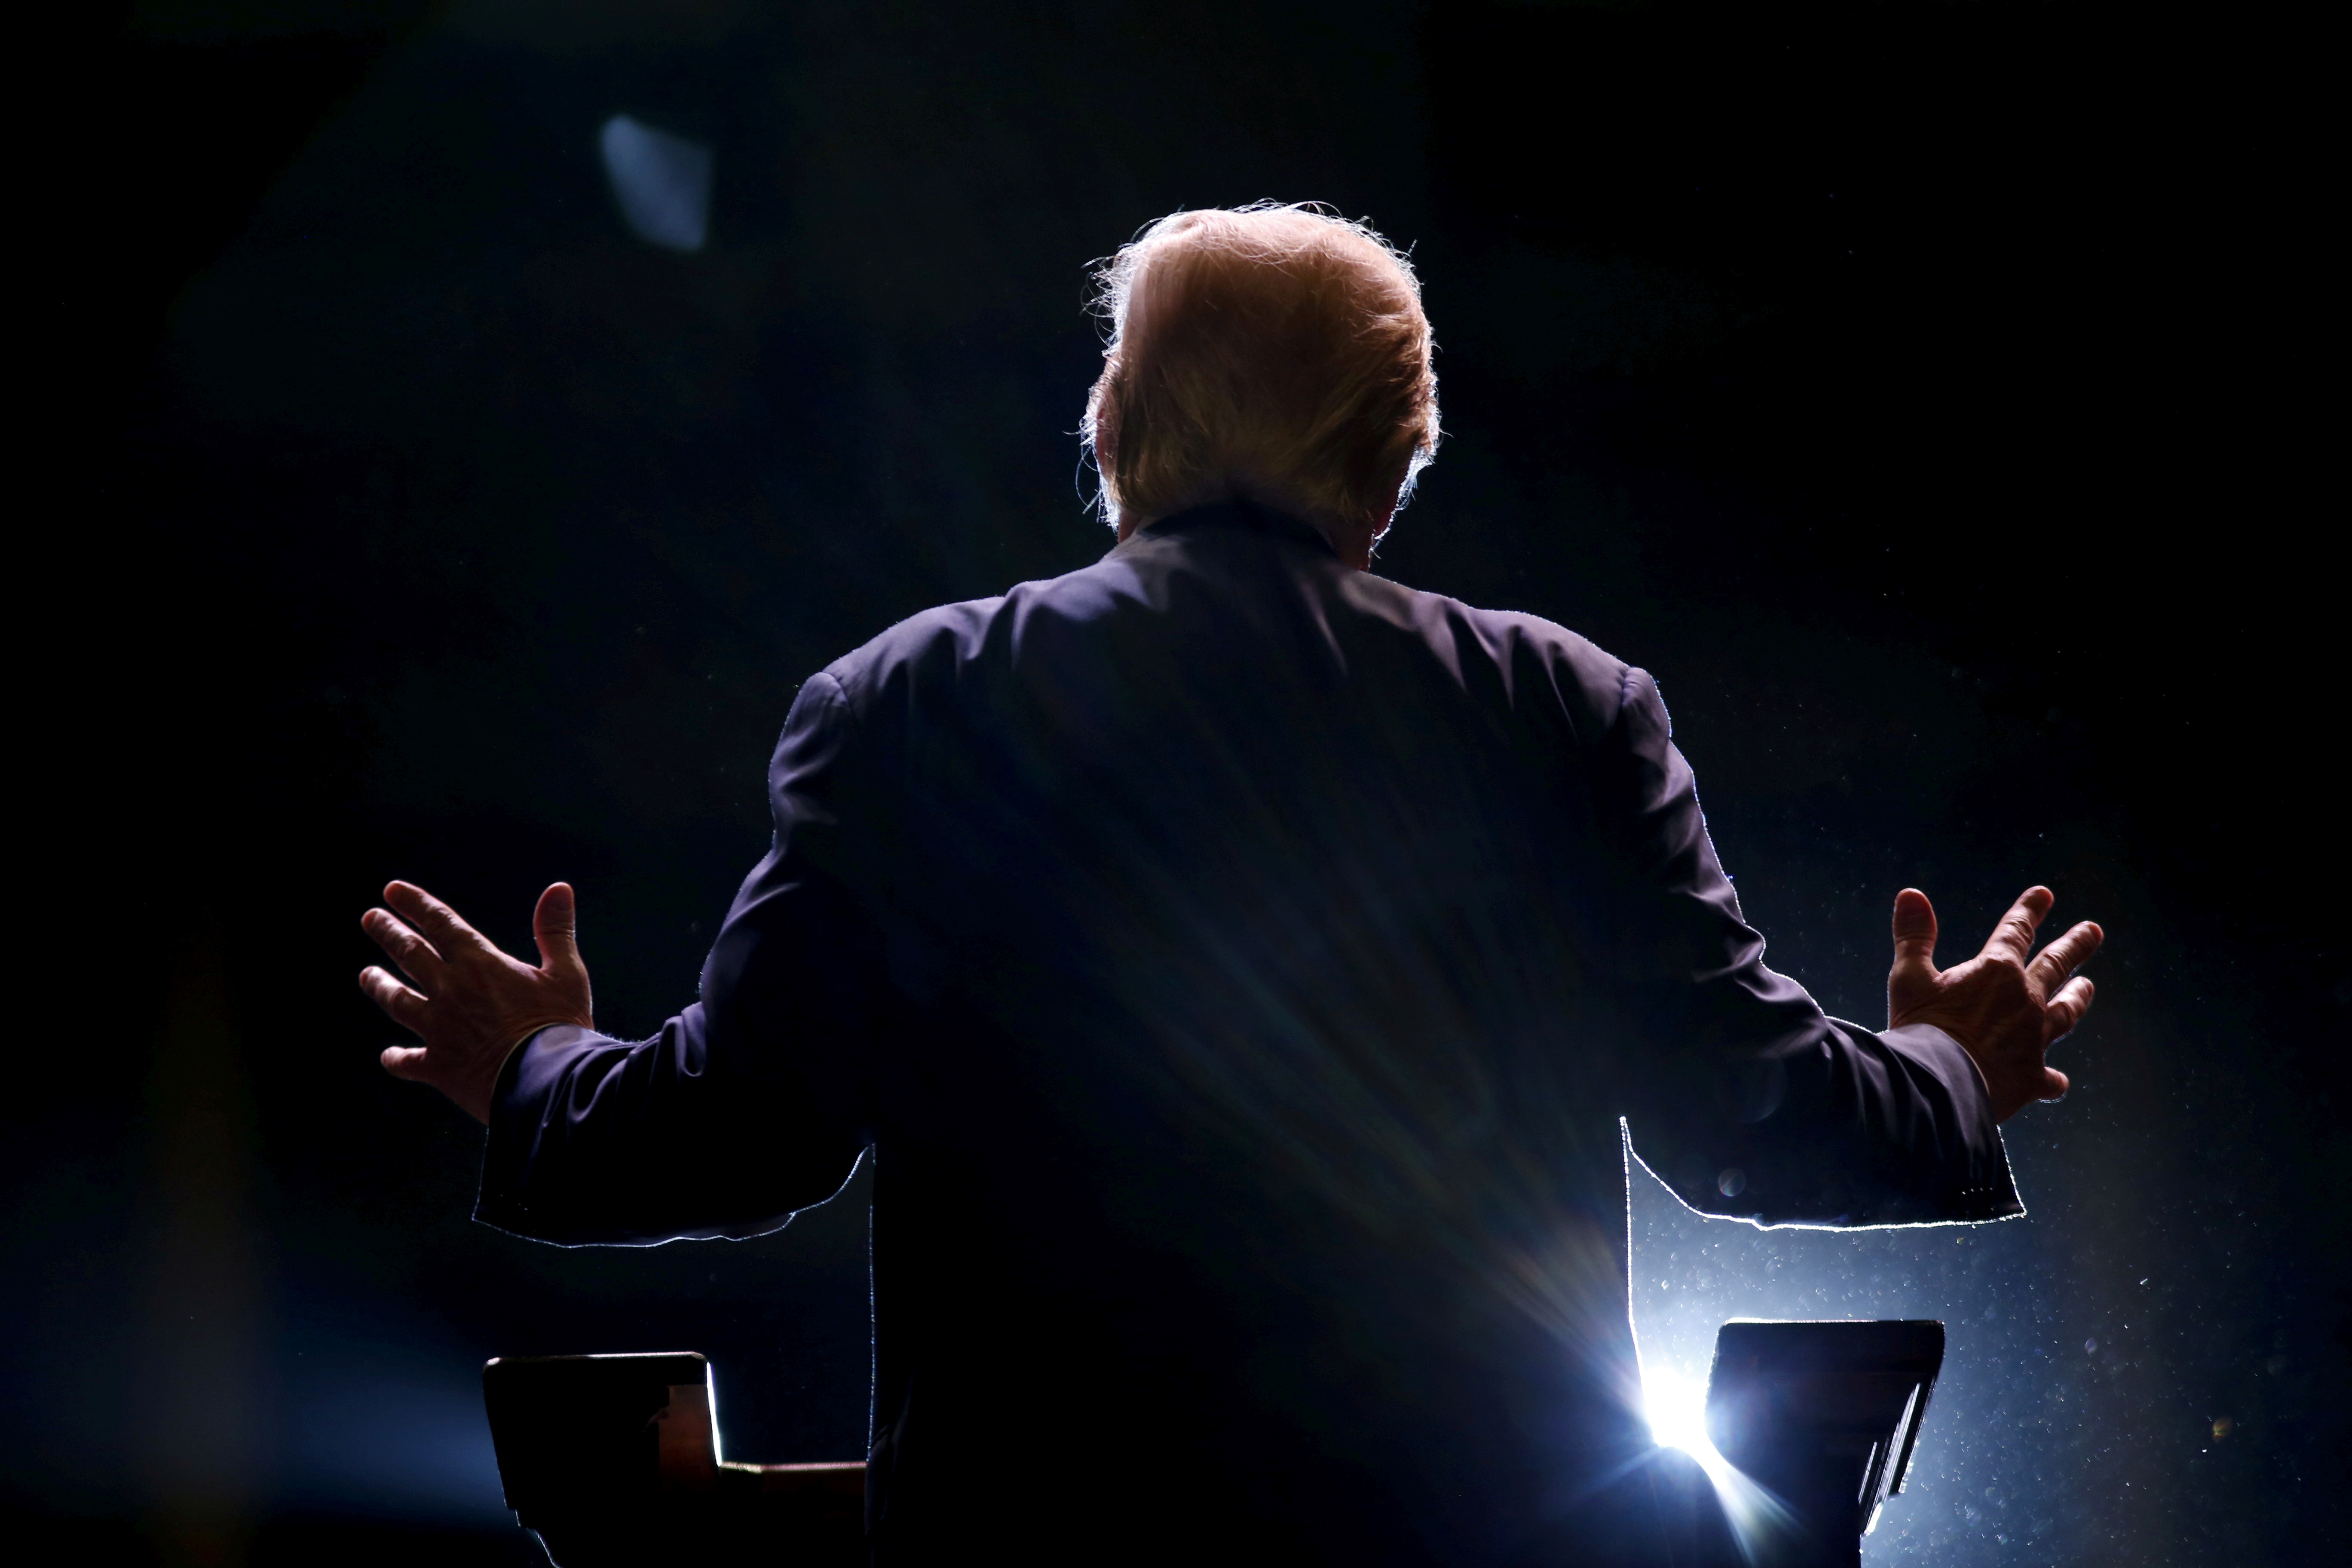 Republican U.S. presidential candidate Donald Trump addresses a Trump for President campaign rally in Macon, Georgia November 30, 2015.   REUTERS/Christopher Aluka Berry